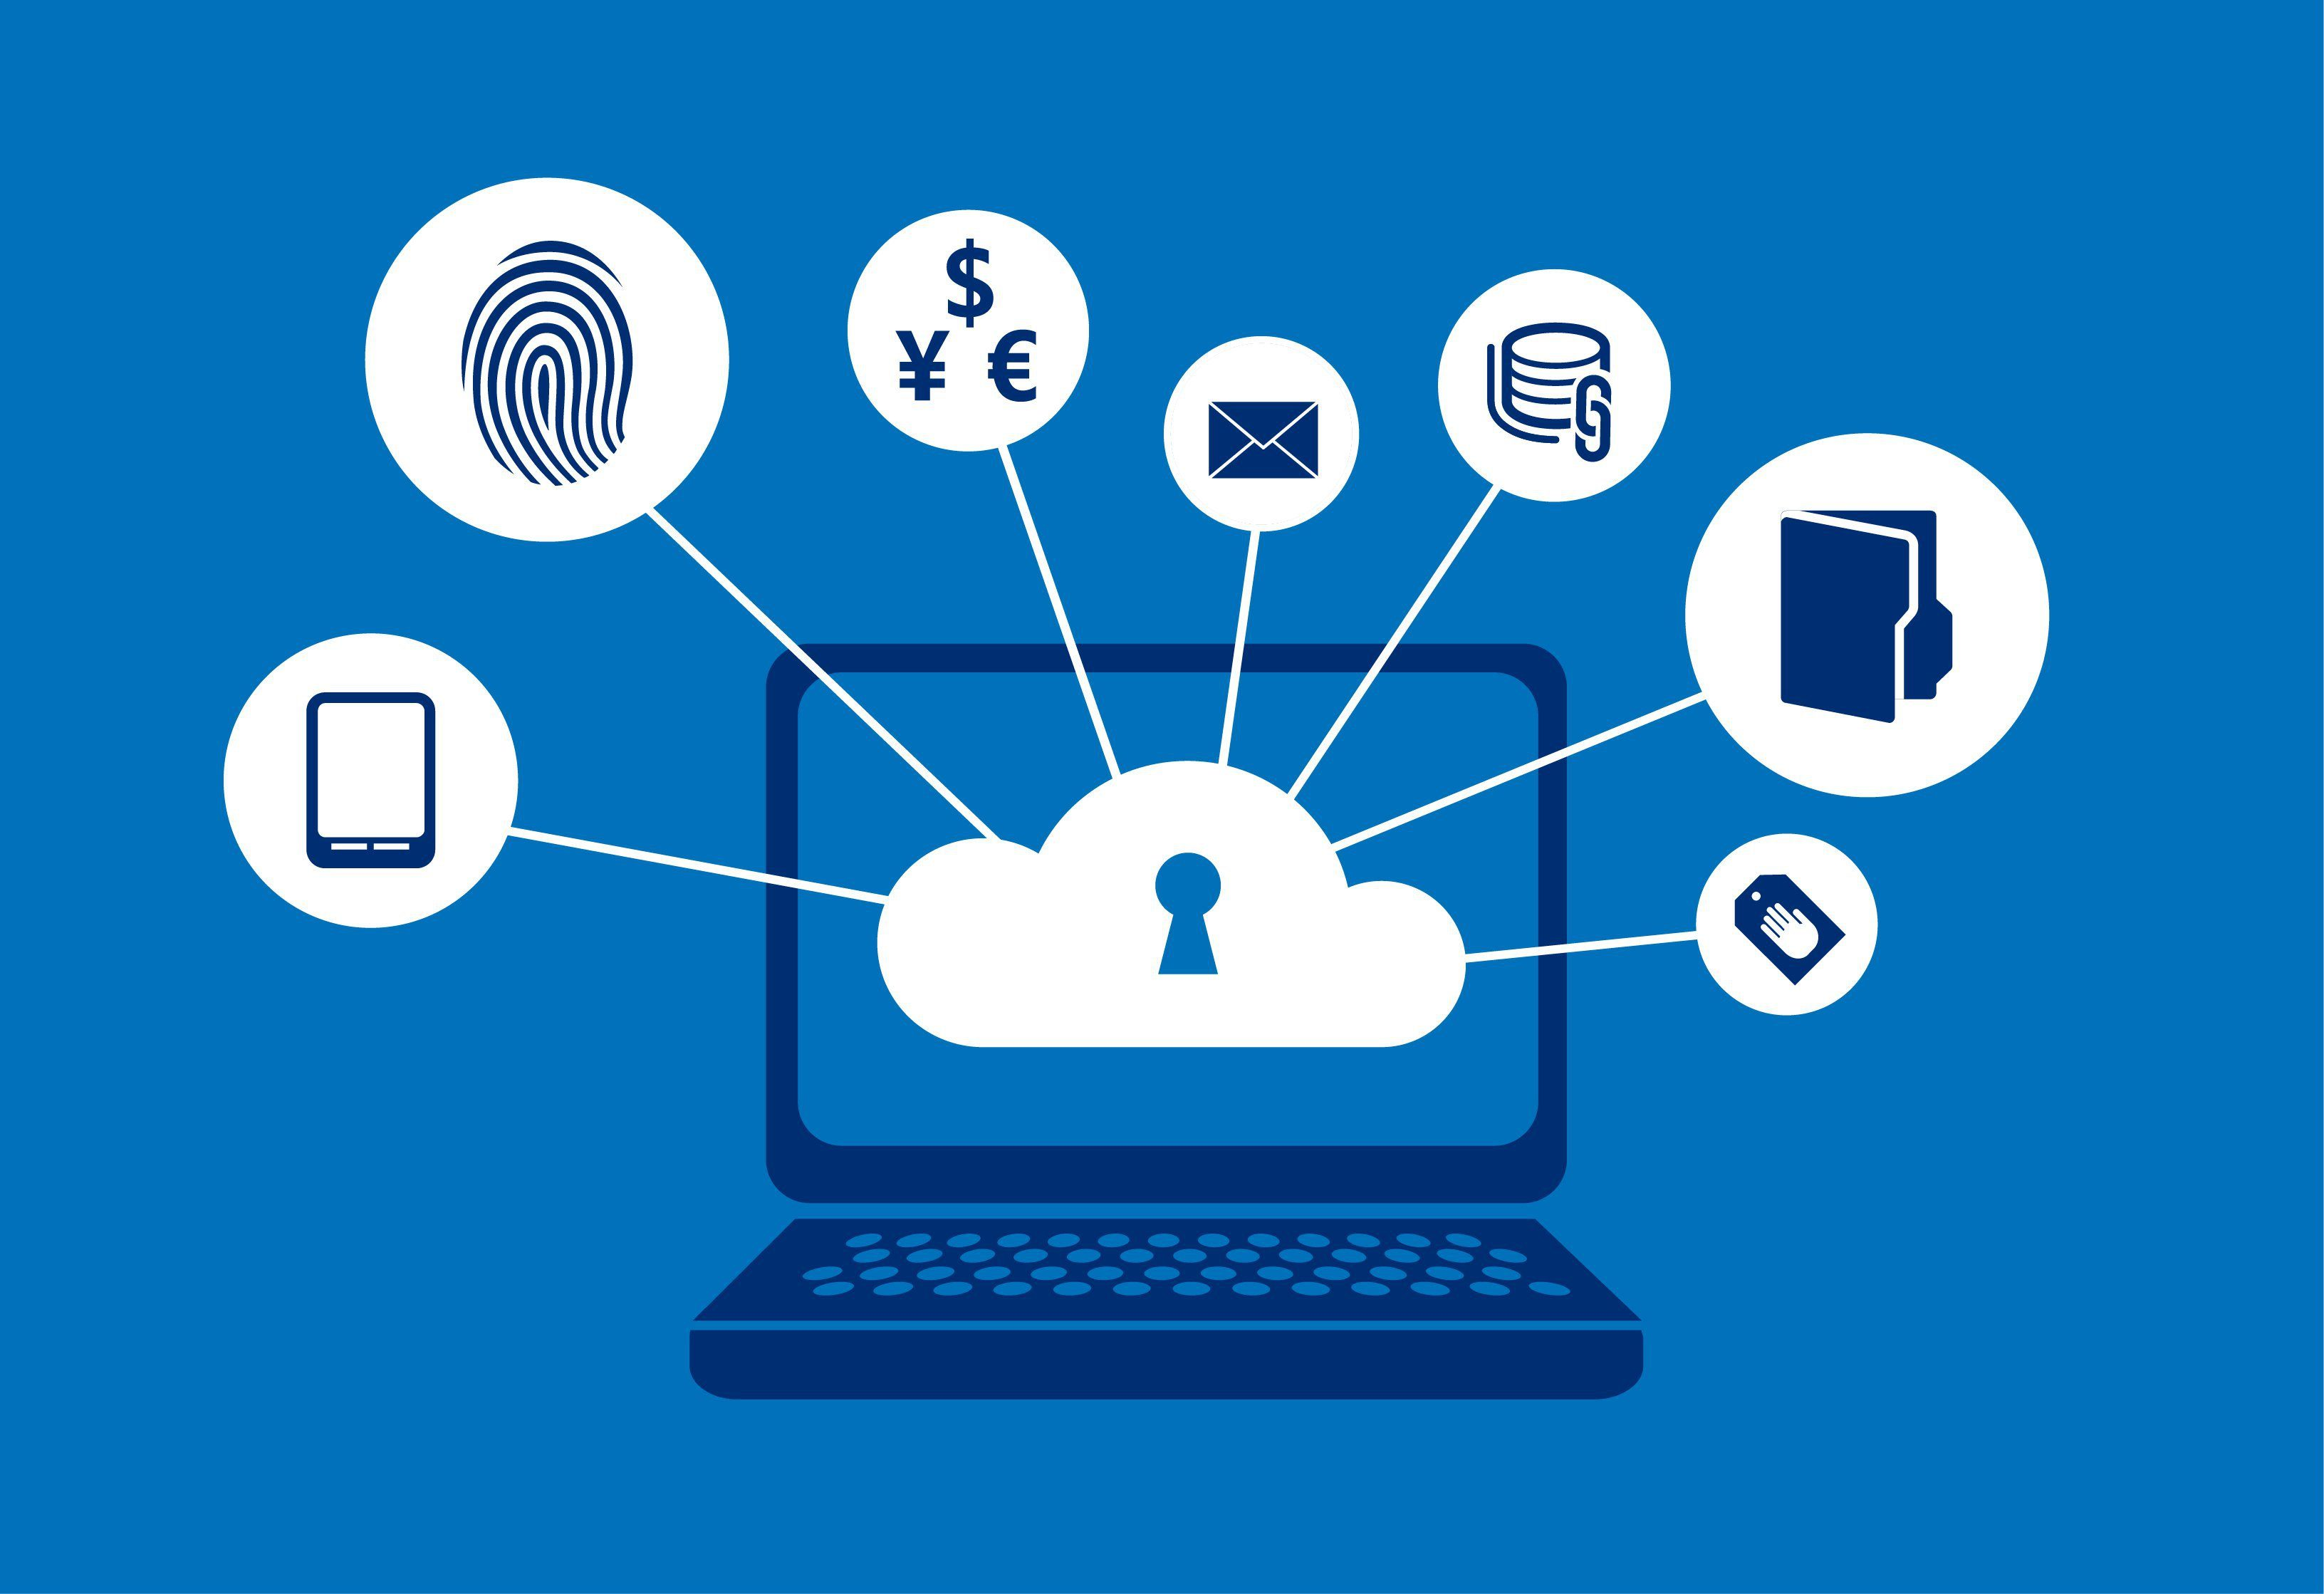 protecting-data-and-privacy-in-the-cloud.jpg